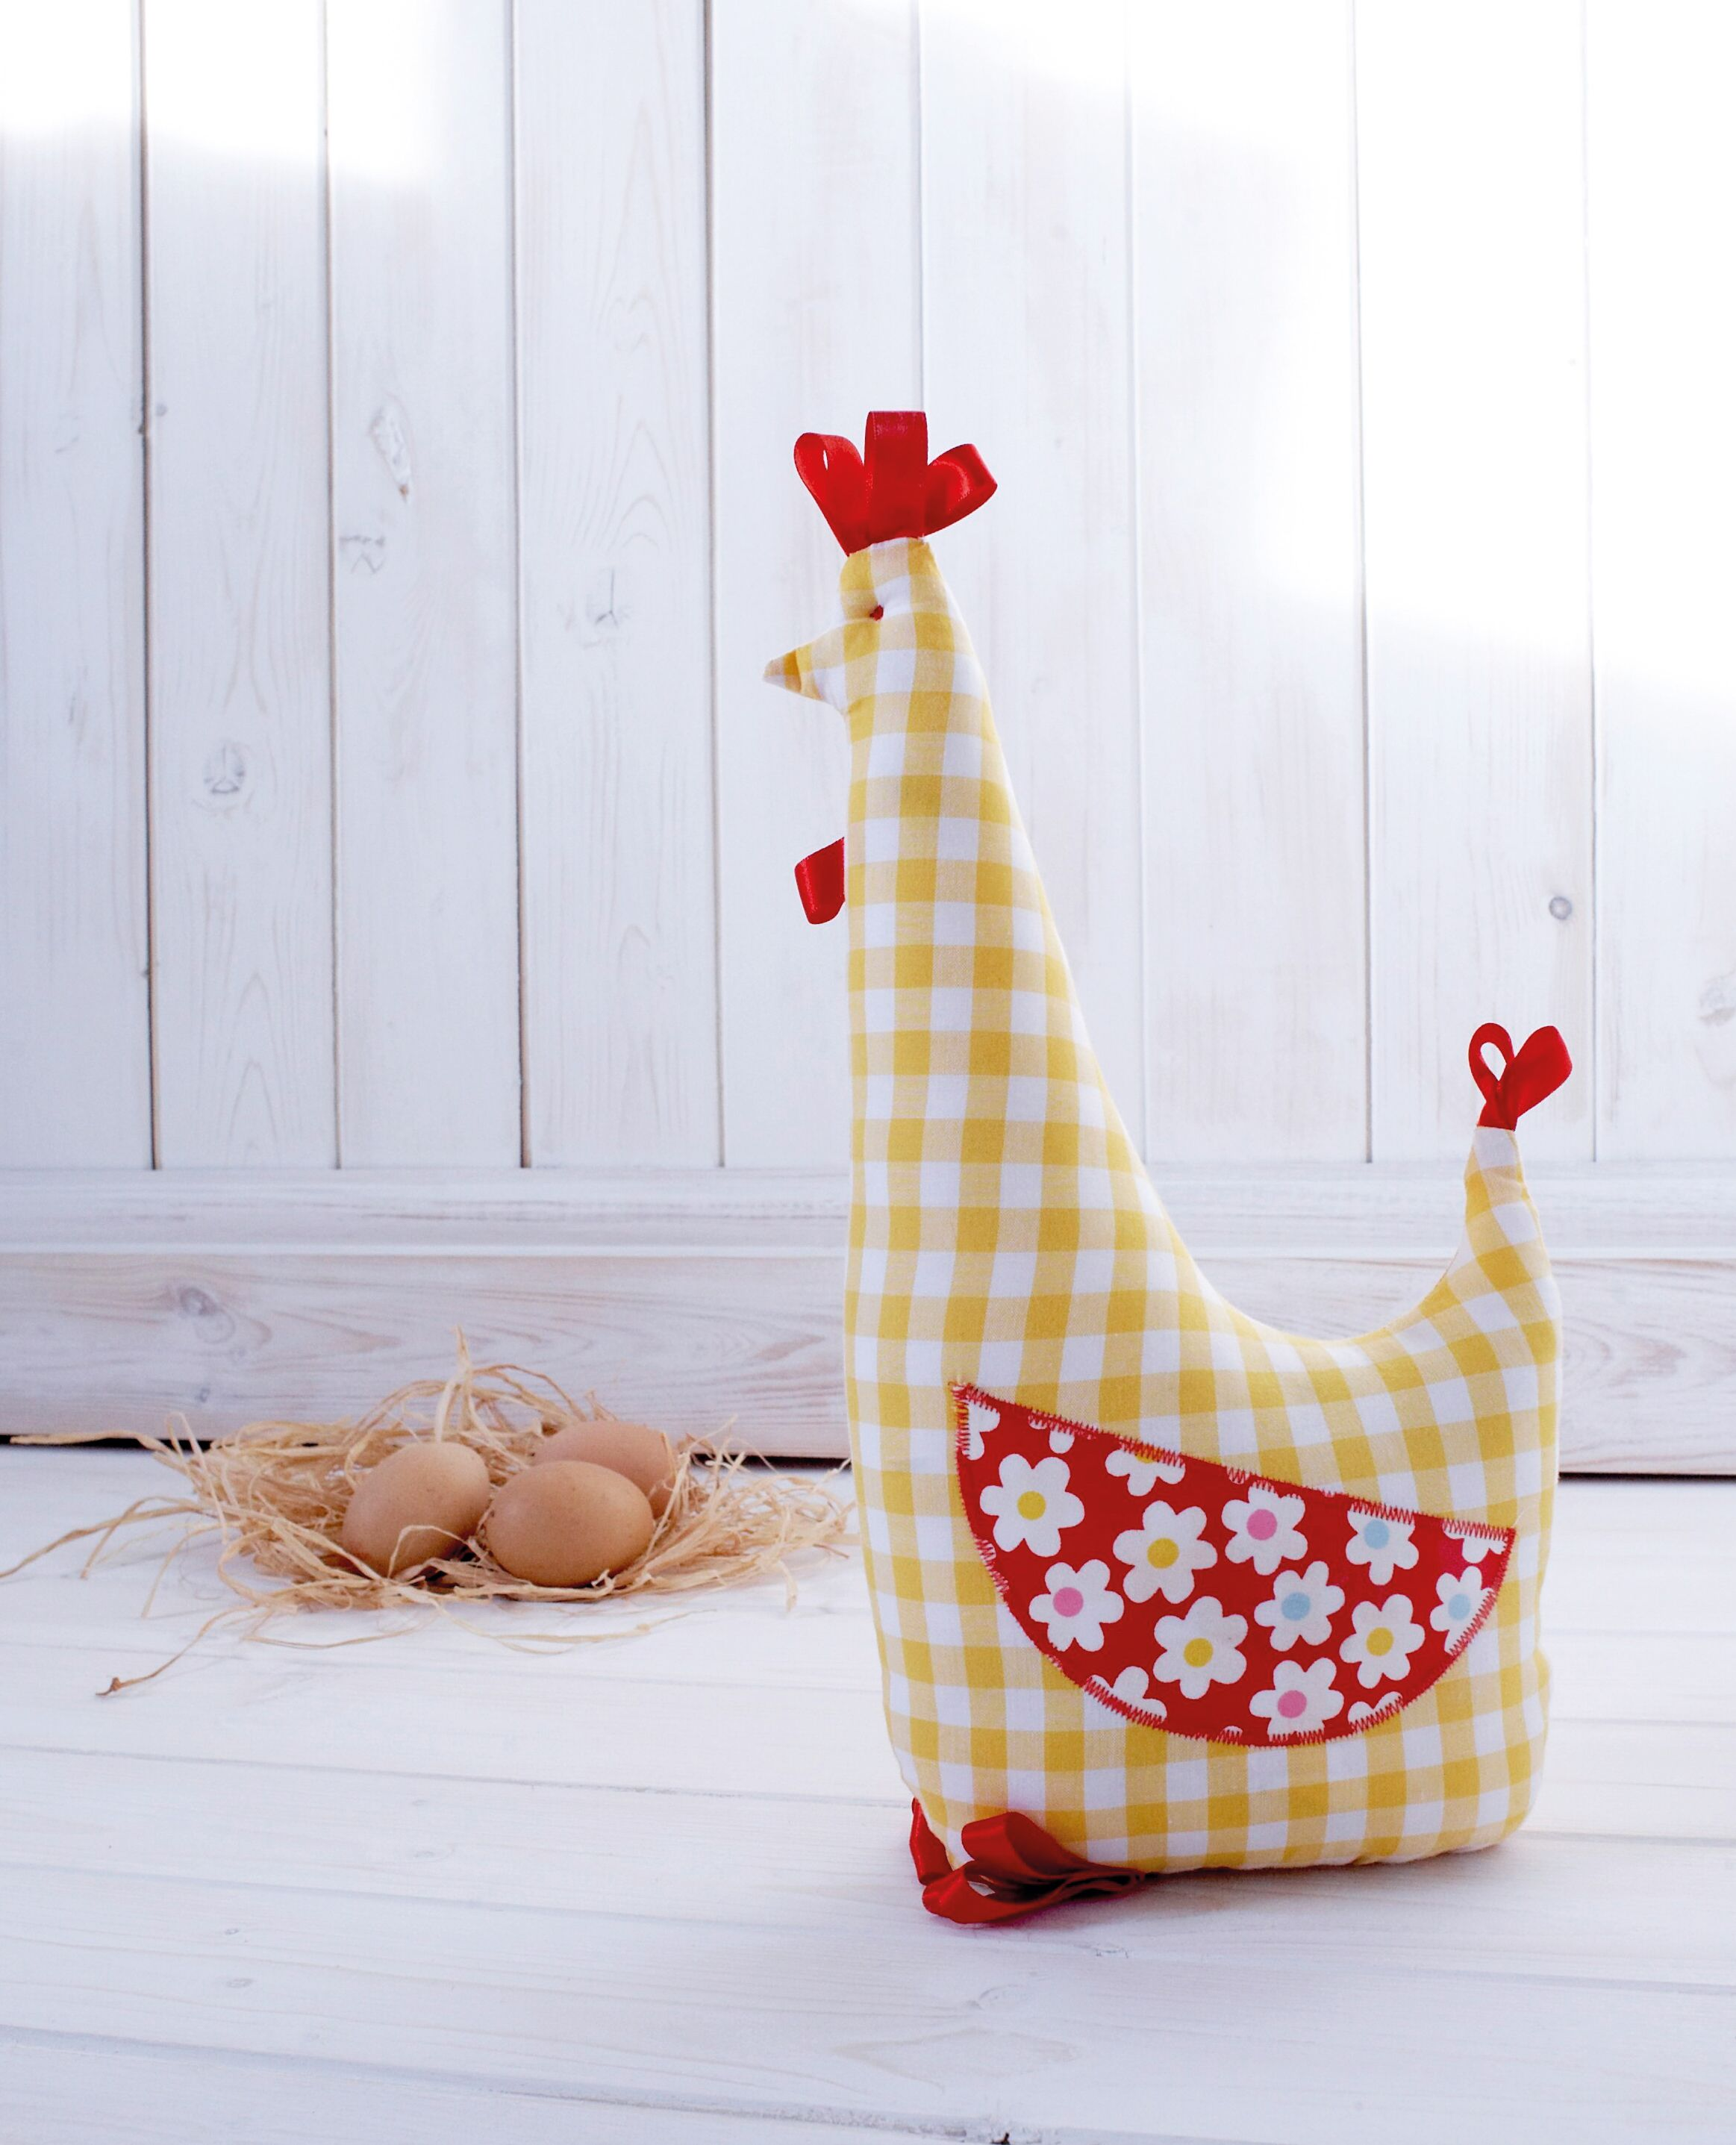 Chicken Doorstop From Half Yard Heaven By Debbie Shore Chicken Crafts Crafts Sewing Projects